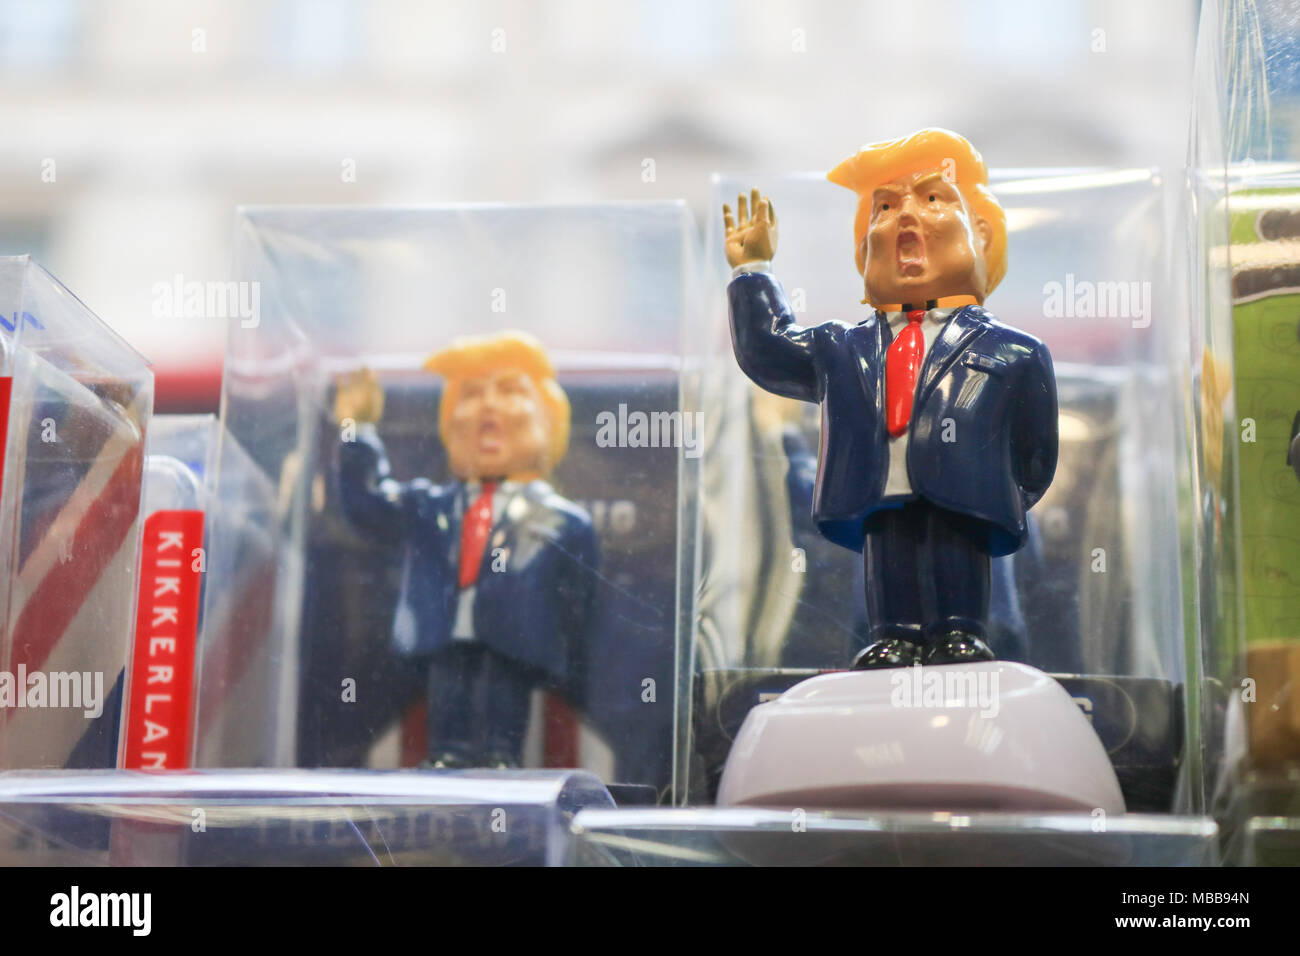 London, UK. 10th April 2018. A Souvenir shop in central London selling  figurine dolls of US President Donald Trump Credit: amer ghazzal/Alamy Live News Stock Photo